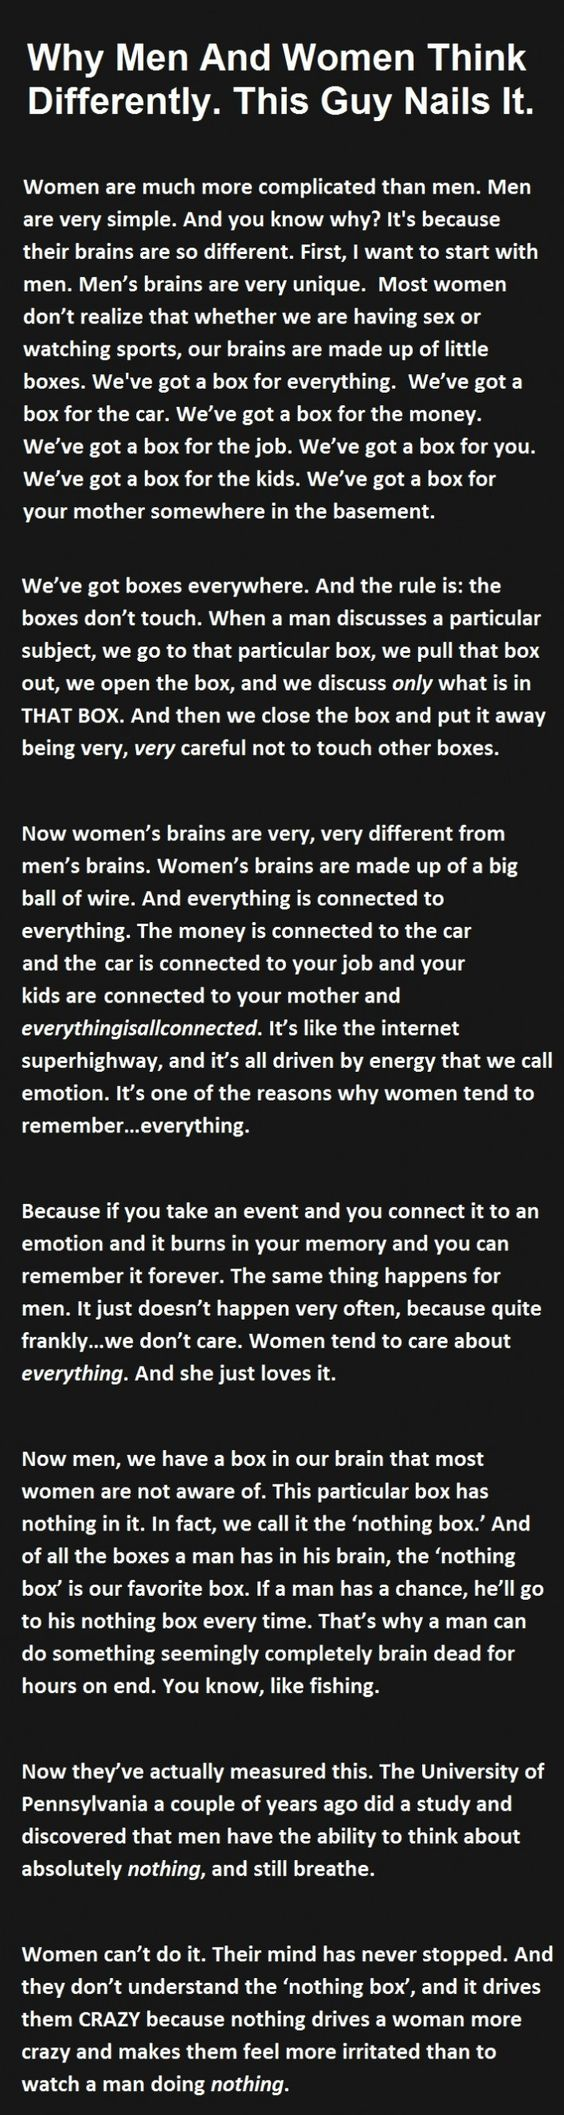 Difference of Men and Women Explained Perfectly